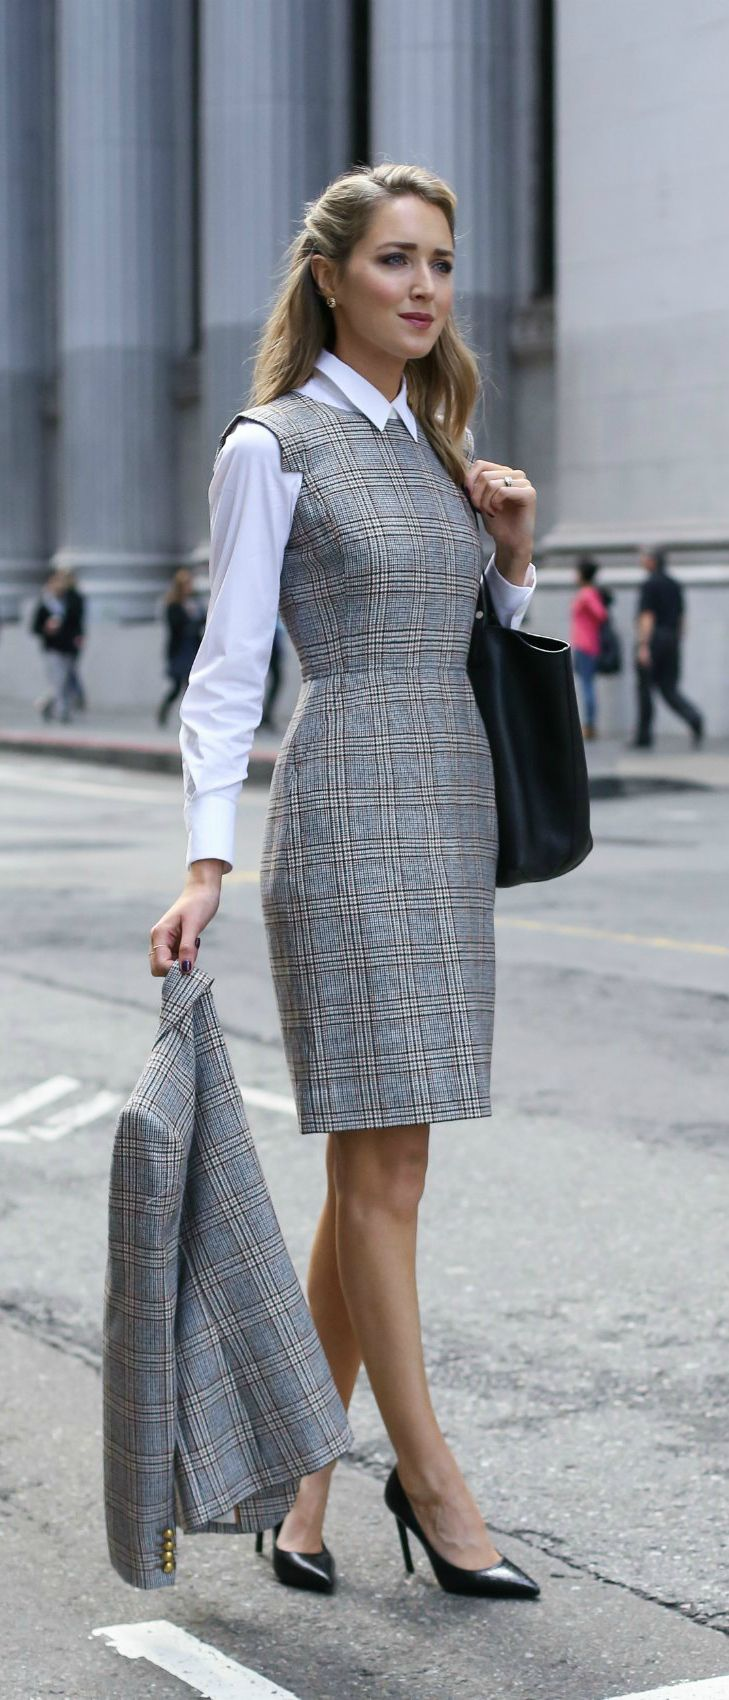 What To Wear To Fall And Winter Business Formal Interviews Glen Plaid Sheath Dress Wi Fashionable Work Outfit Interview Outfits Women Business Casual Dresses